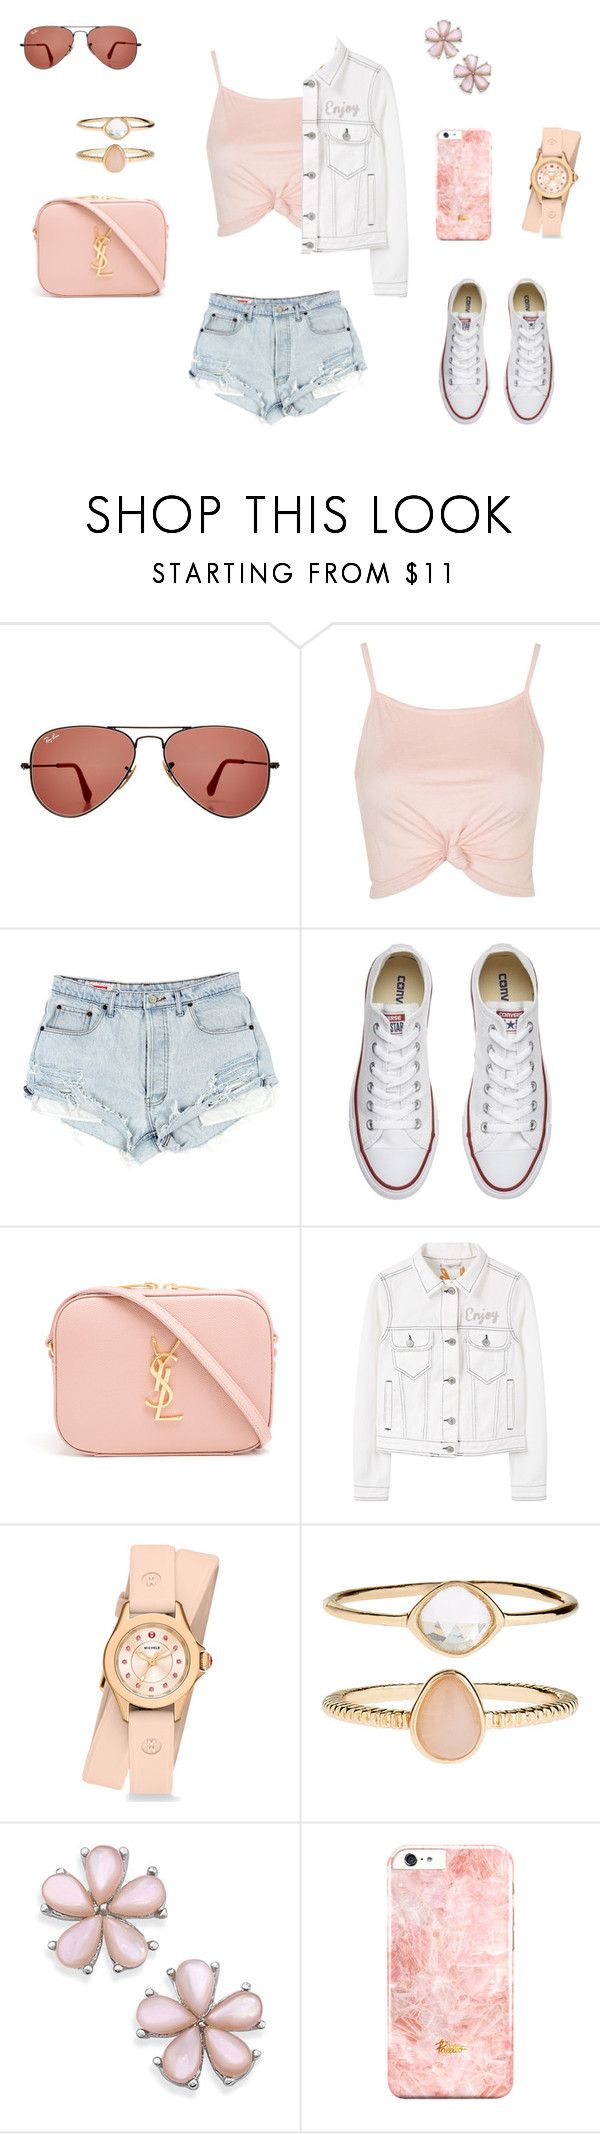 """Rosé"" by xxnadjaxxsc ❤ liked on Polyvore featuring Ray-Ban, Topshop, Converse, Yves Saint Laurent, MANGO, Michele and Accessorize"